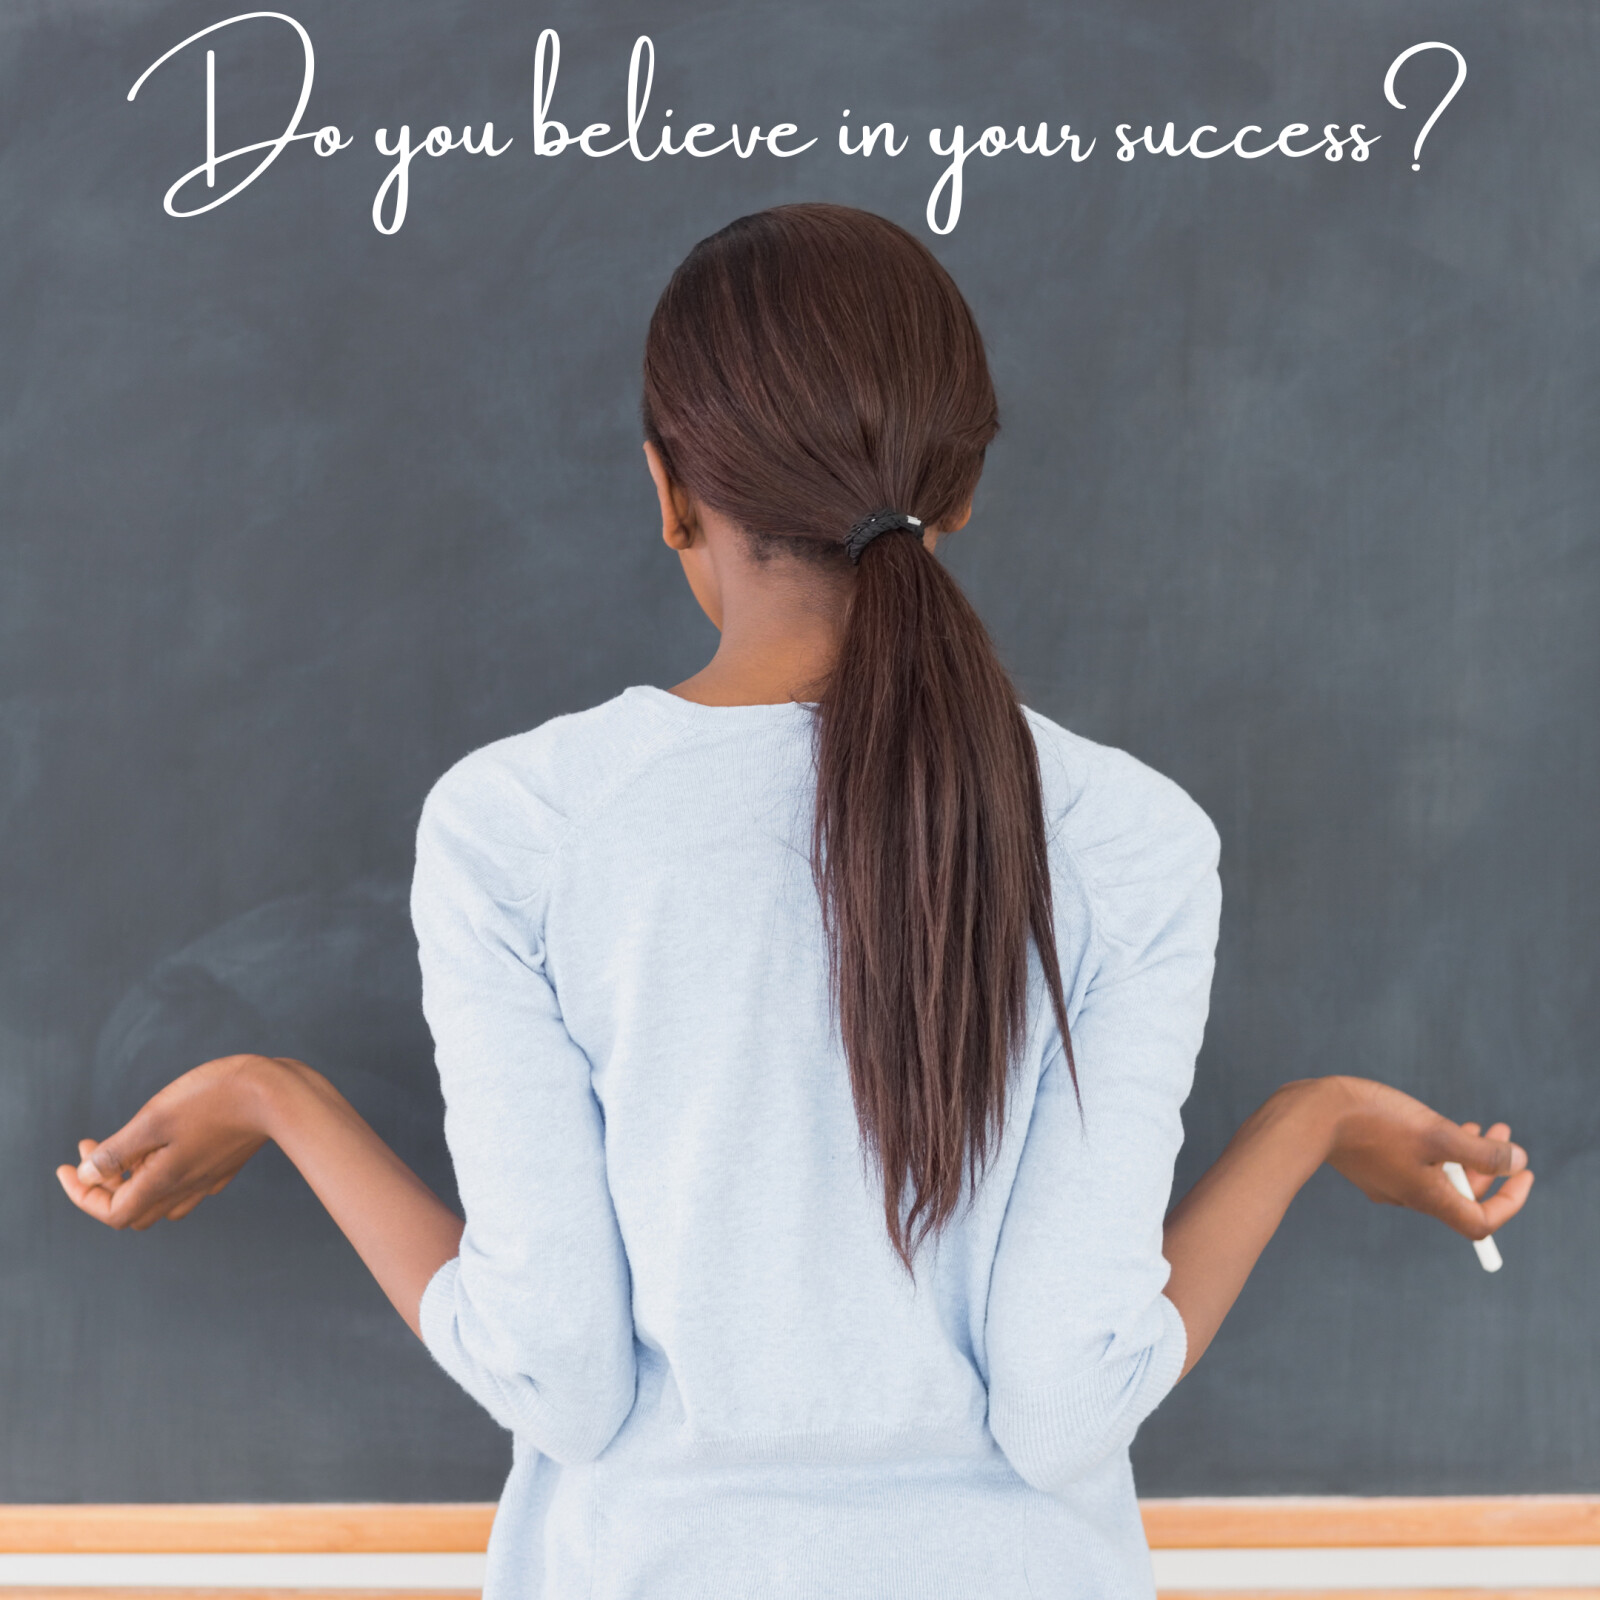 Do you believe in your success?